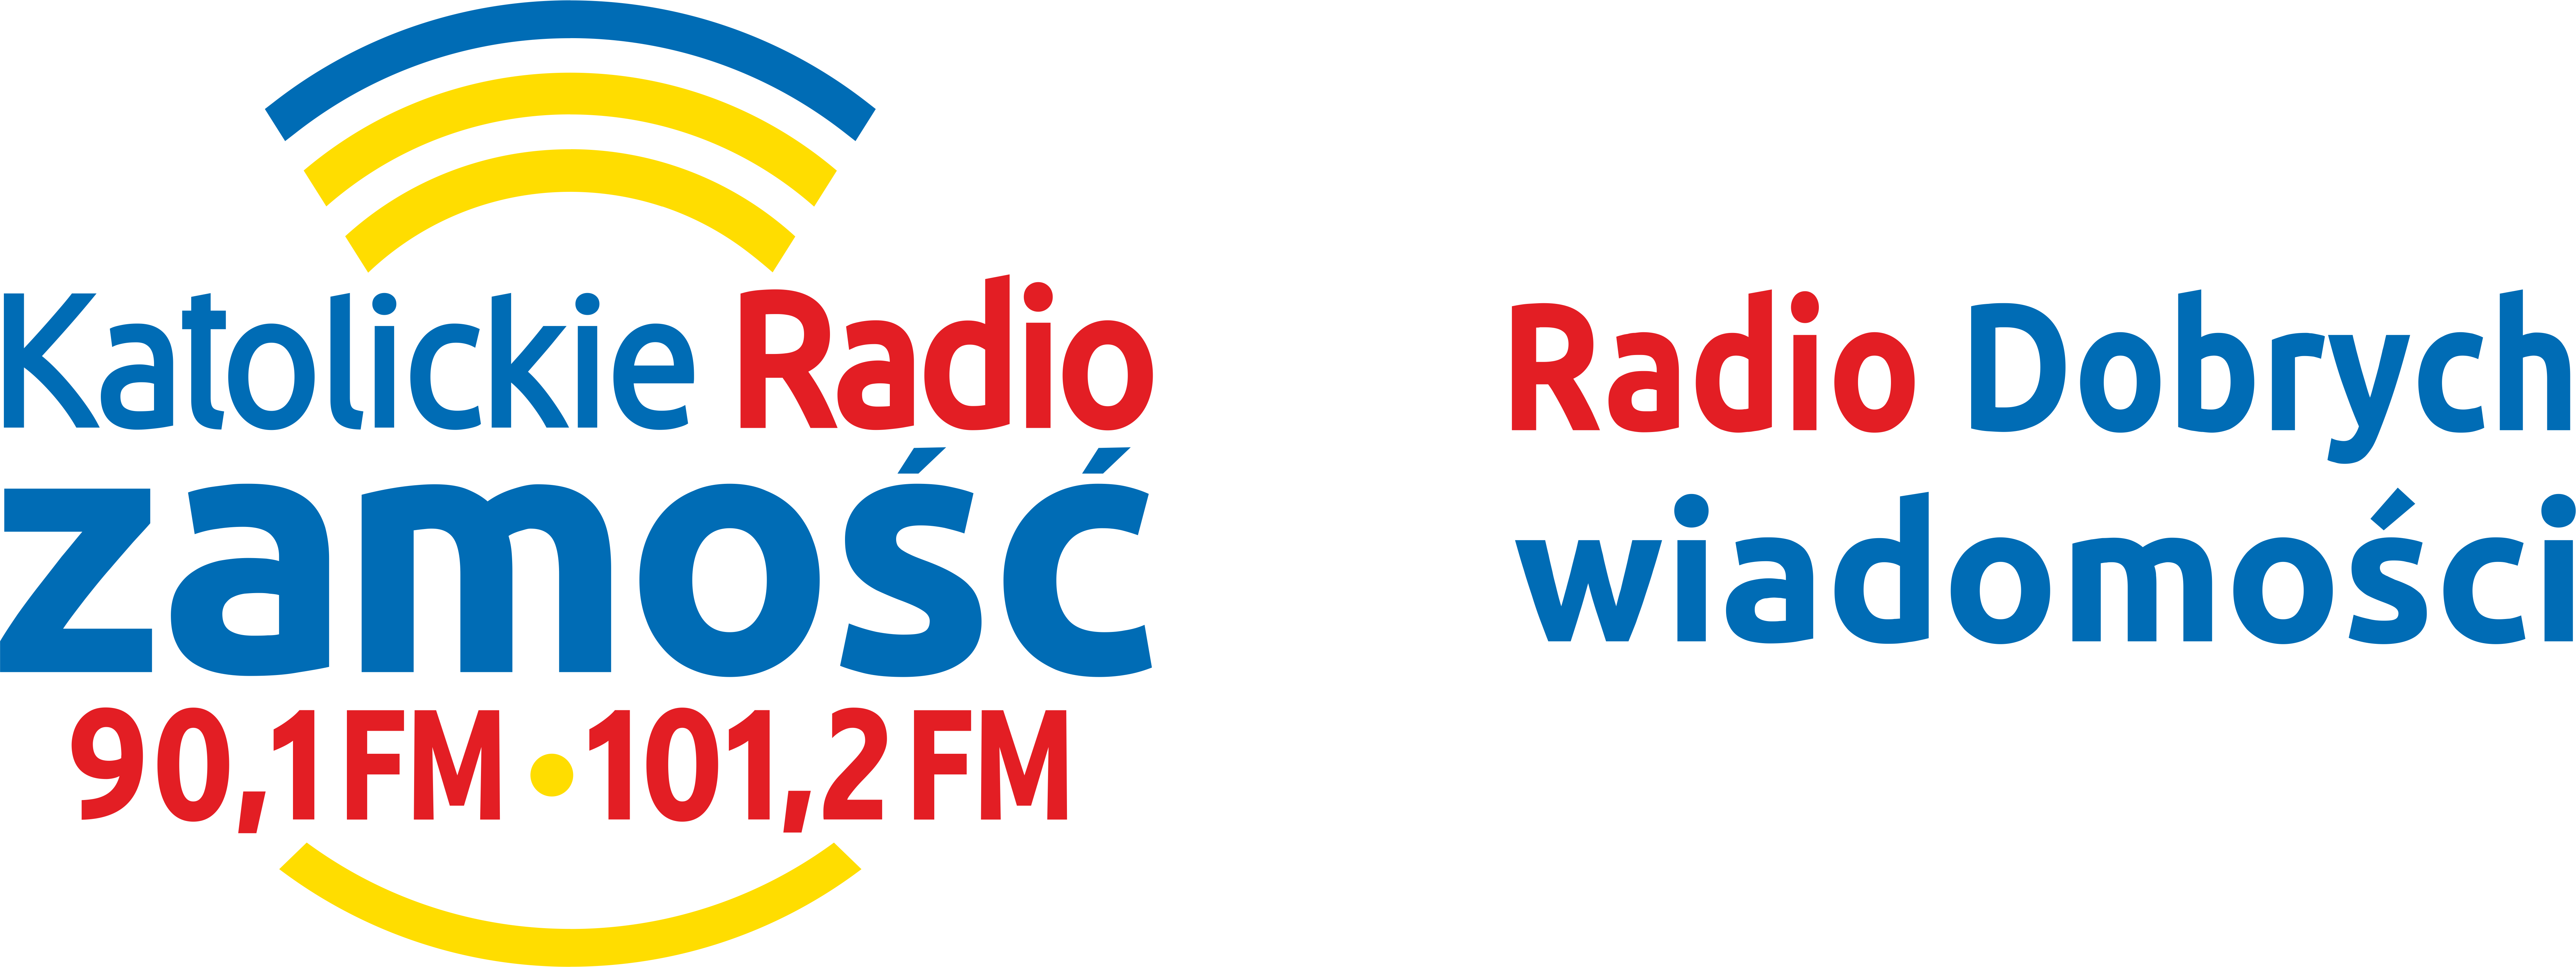 Katolickie Radio Zamość